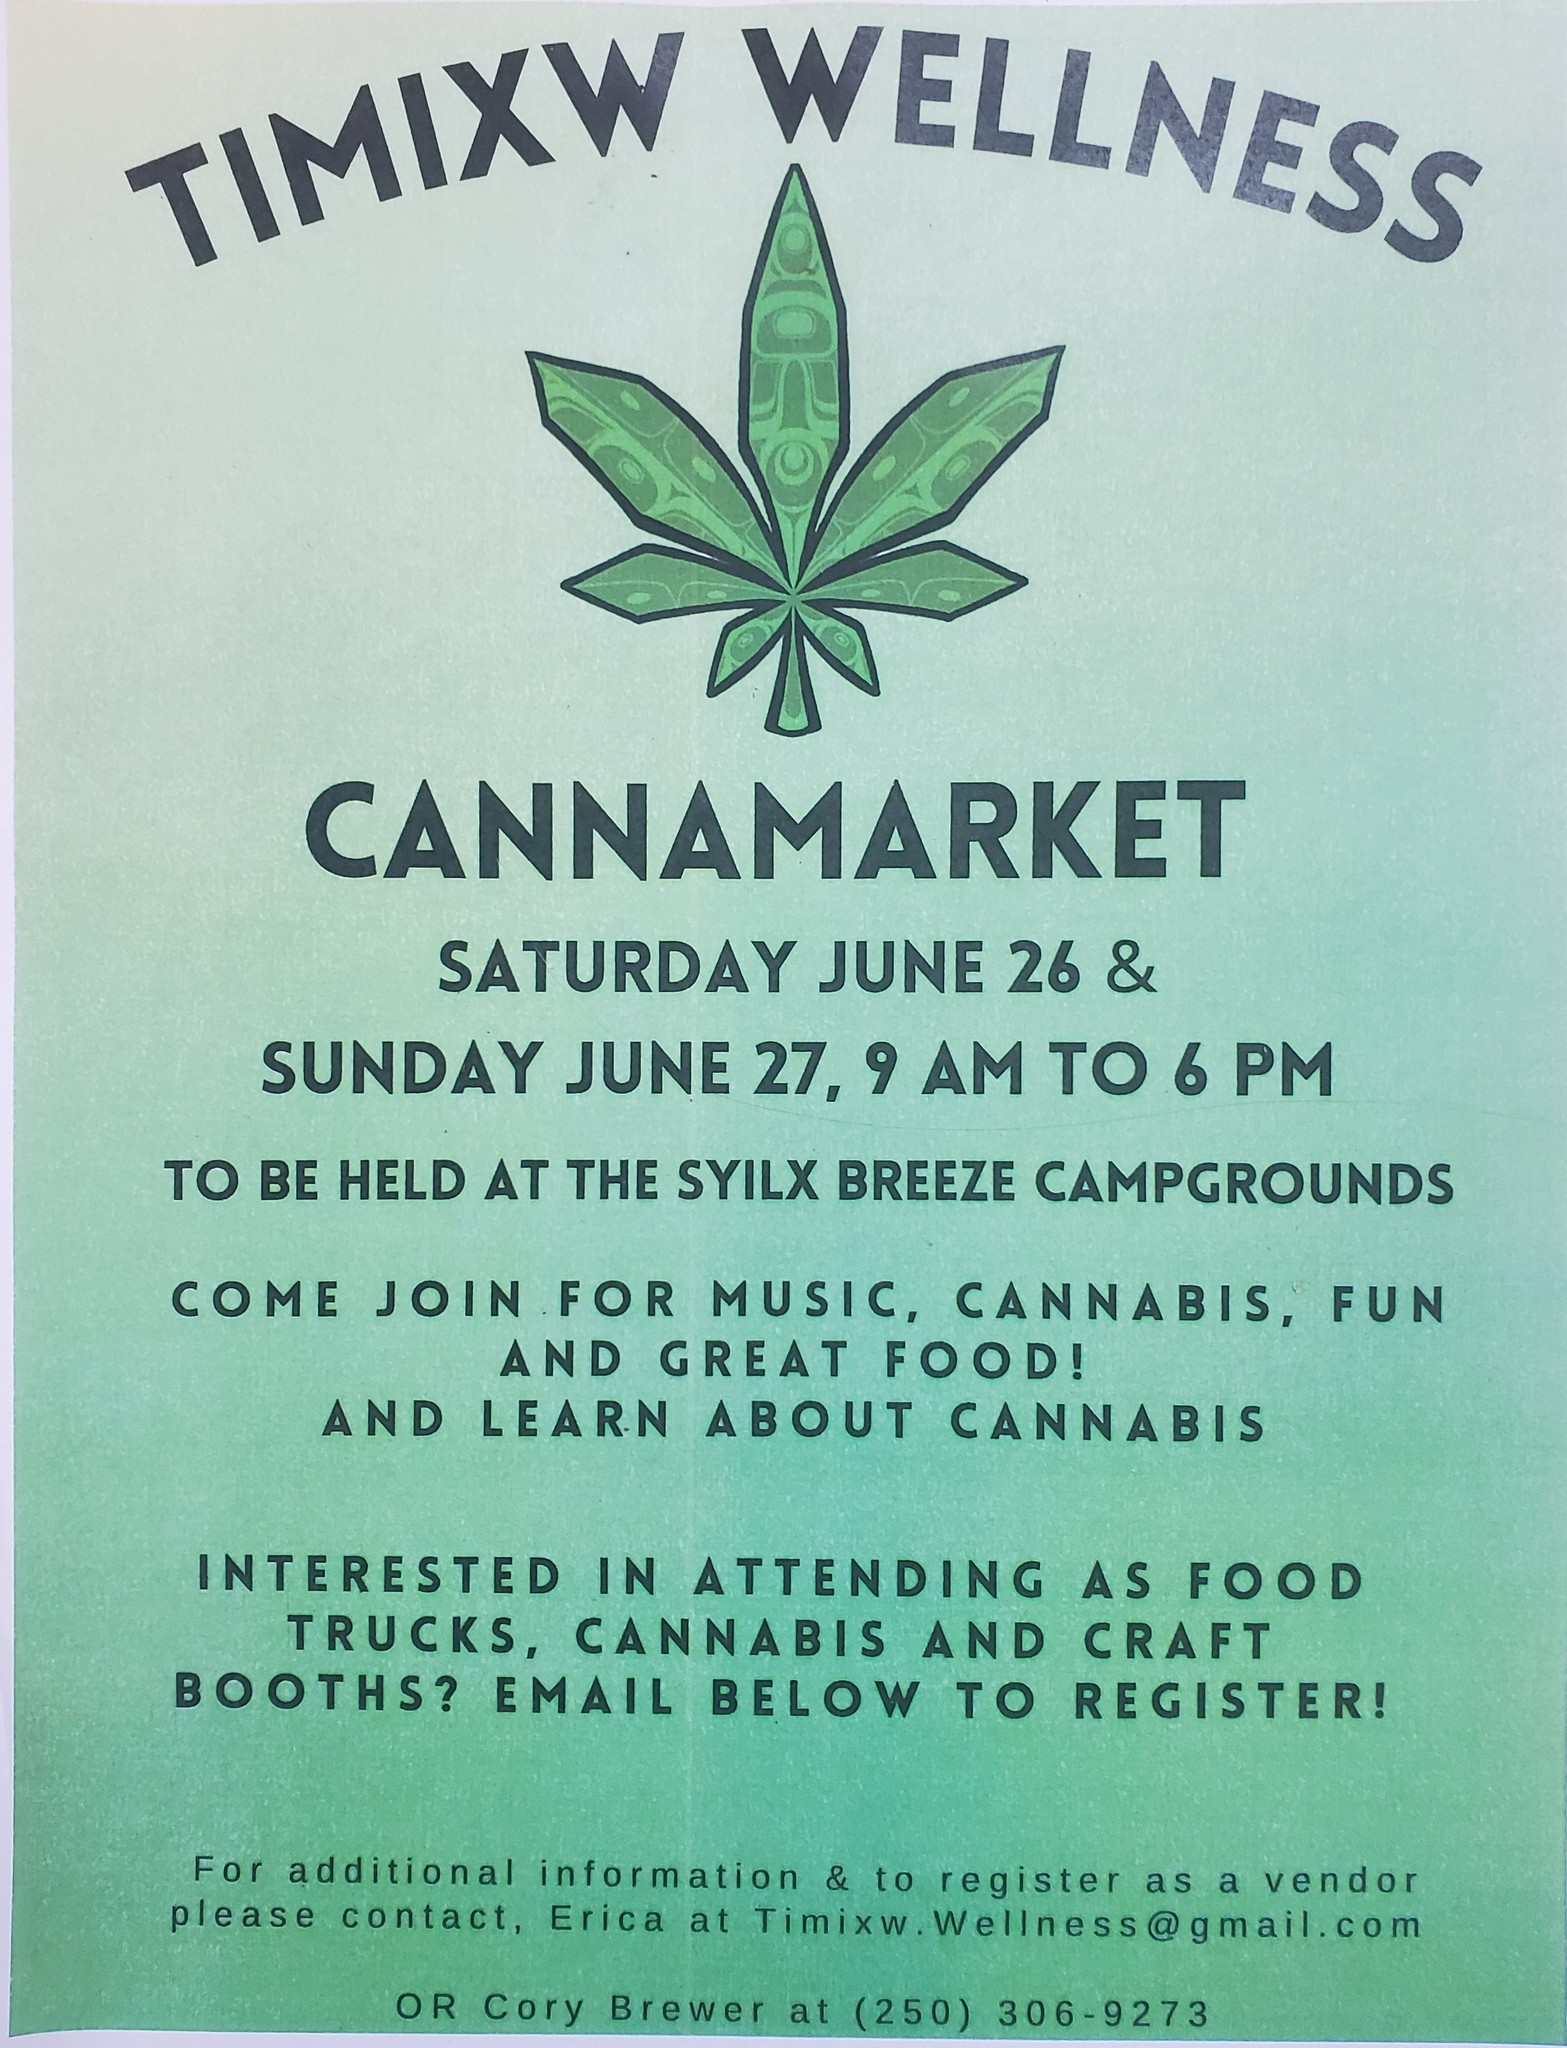 COME SEE US AT THE CANNAMARKET